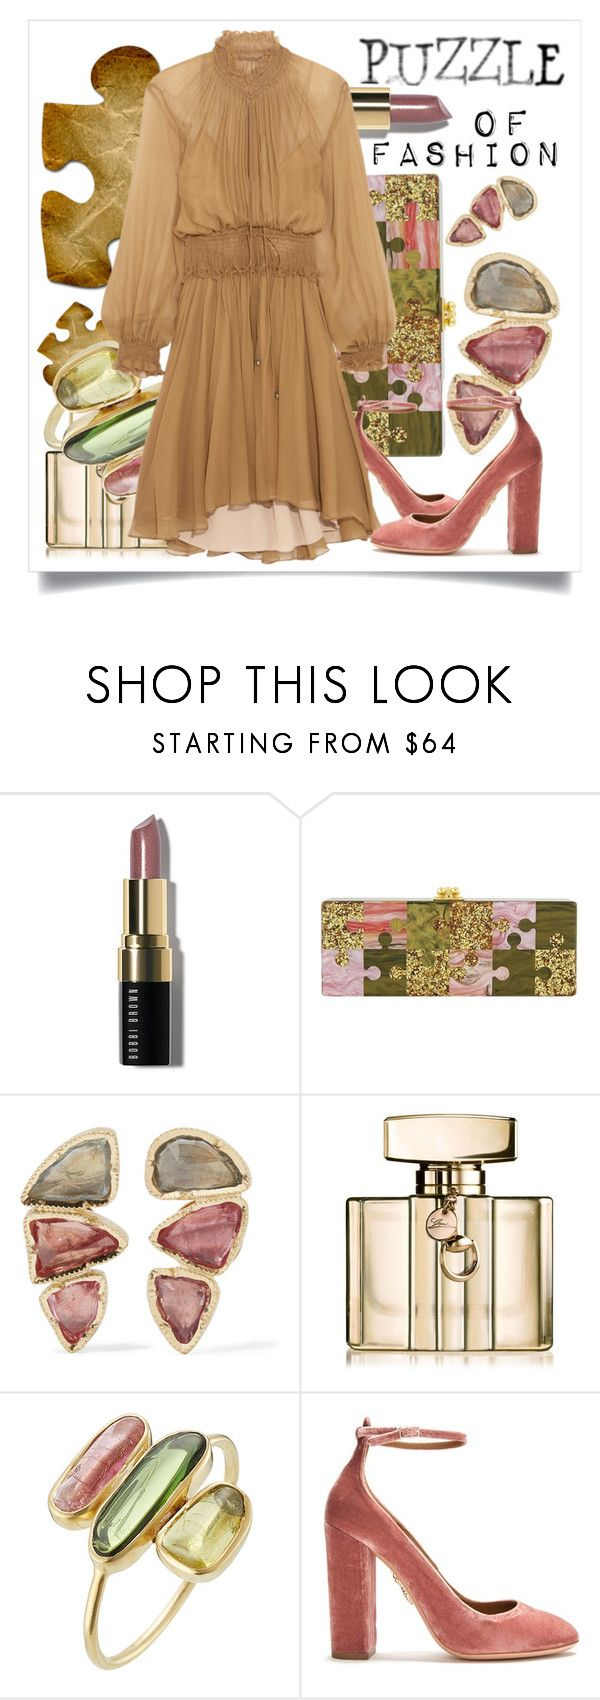 """Puzzle of Fashion"" by capricat ❤ liked on Polyvore featuring Bobbi Brown Cosmetics, Edie Parker, BROOKE GREGSON, Gucci, Pippa Small, Aquazzura and Chloé"